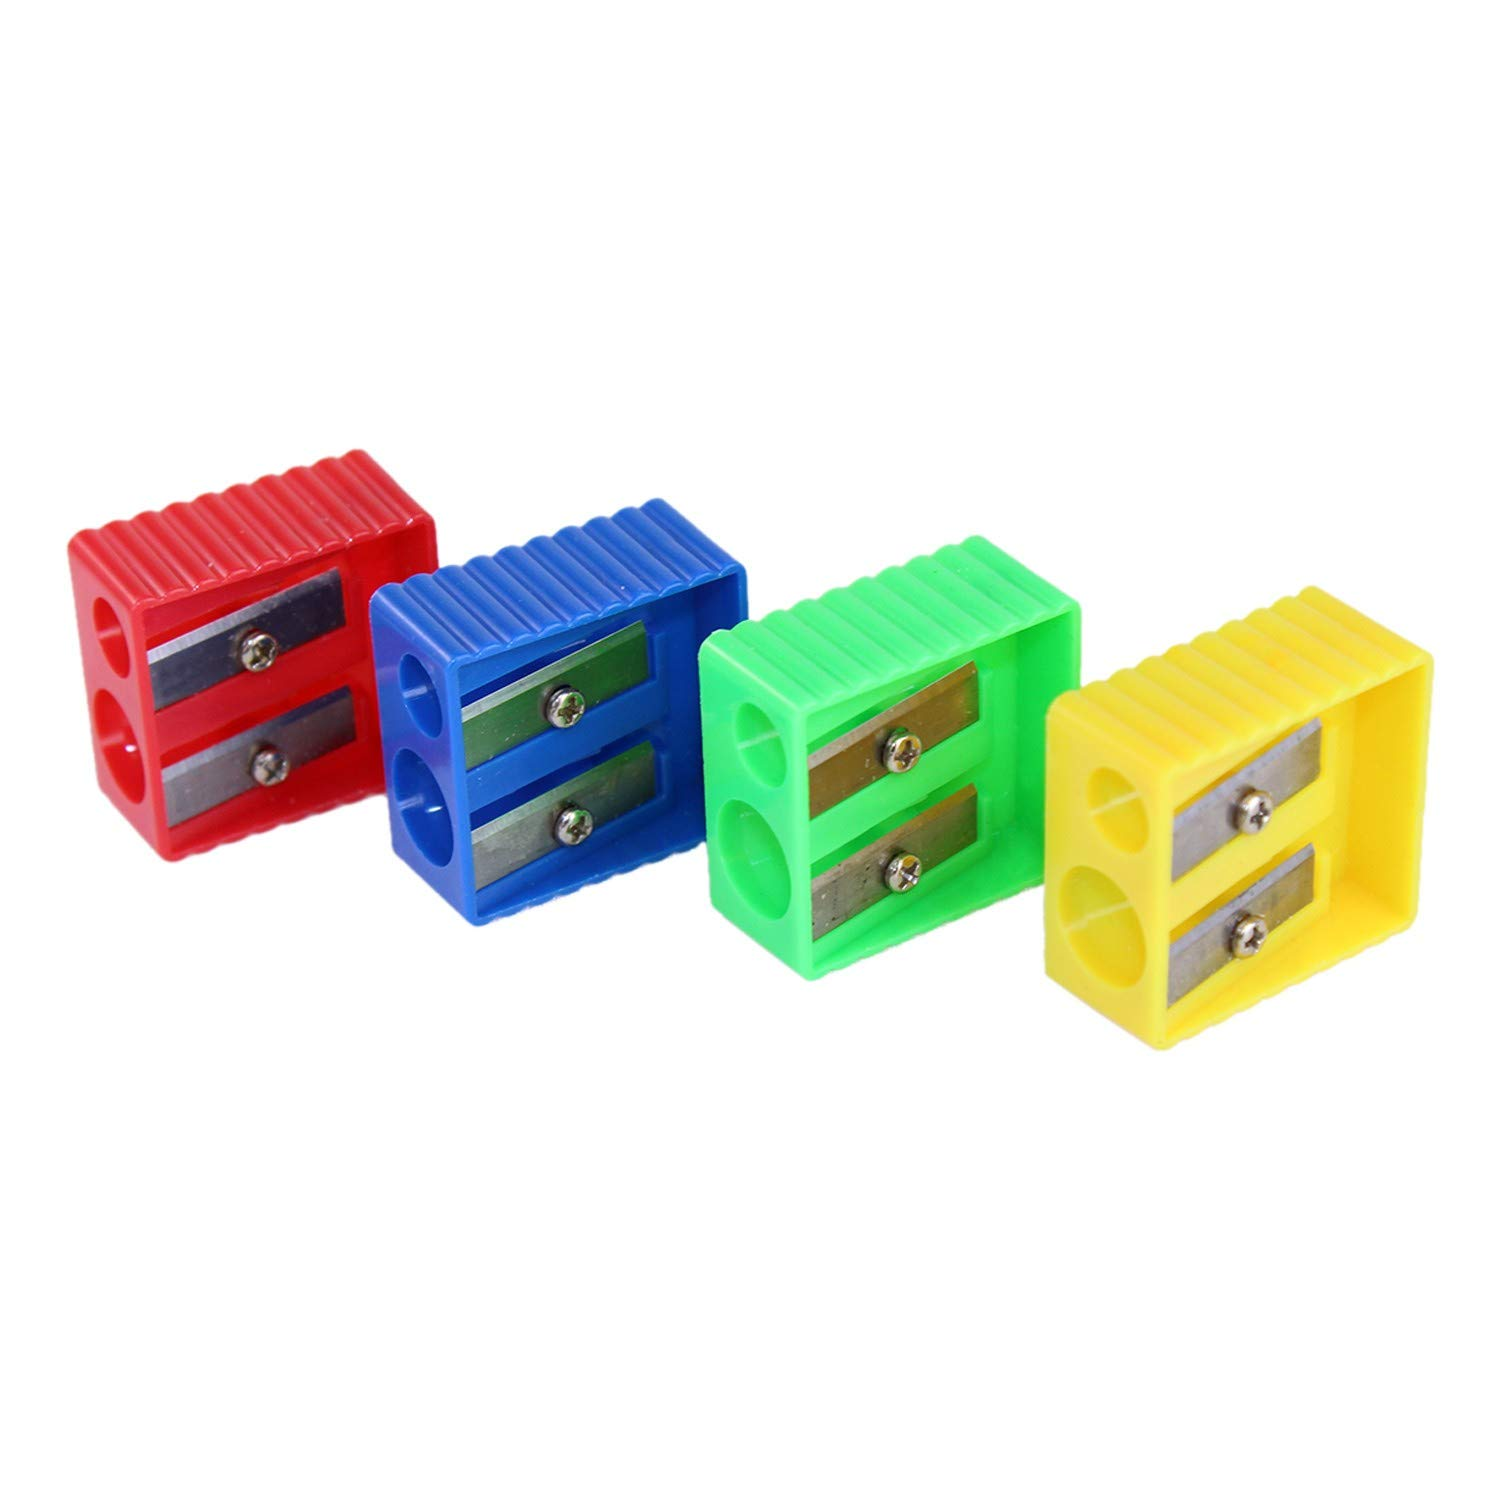 240 Sharpeners - Wholesale Kids 2 Hole Pencil Sharpener in 4 Assorted Colors - School Supplies - Bulk Case